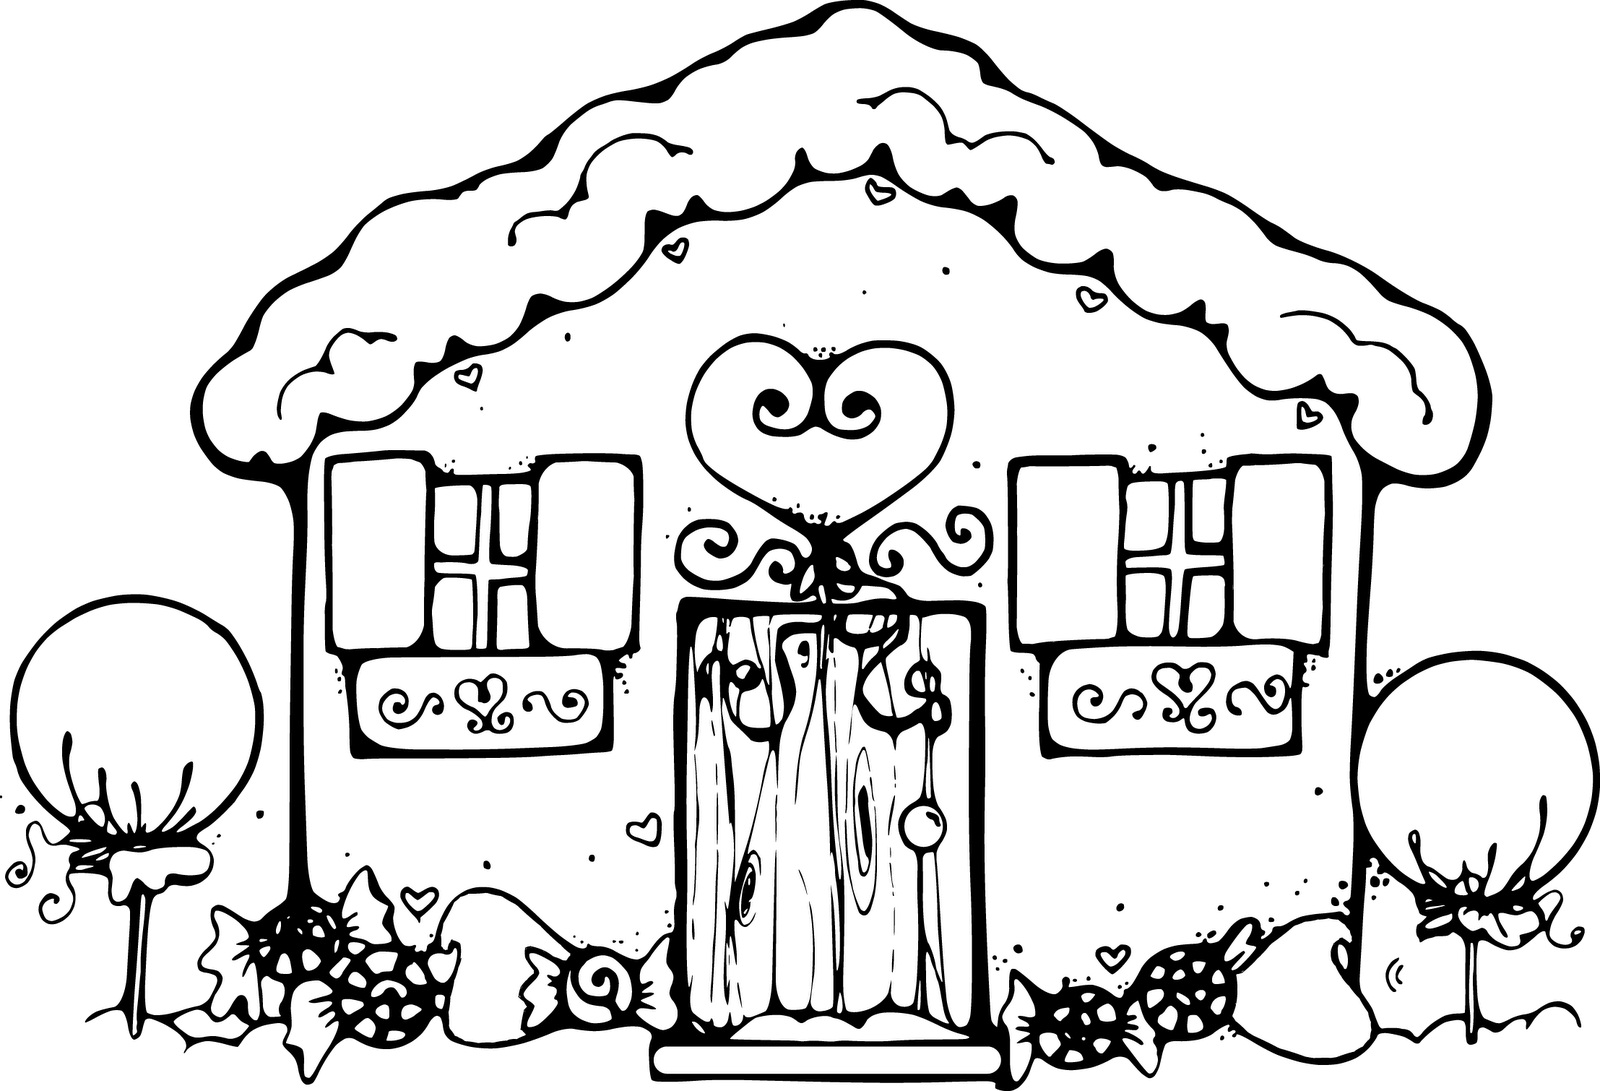 house coloring pages printable victorian house coloring page free printable coloring pages house printable coloring pages